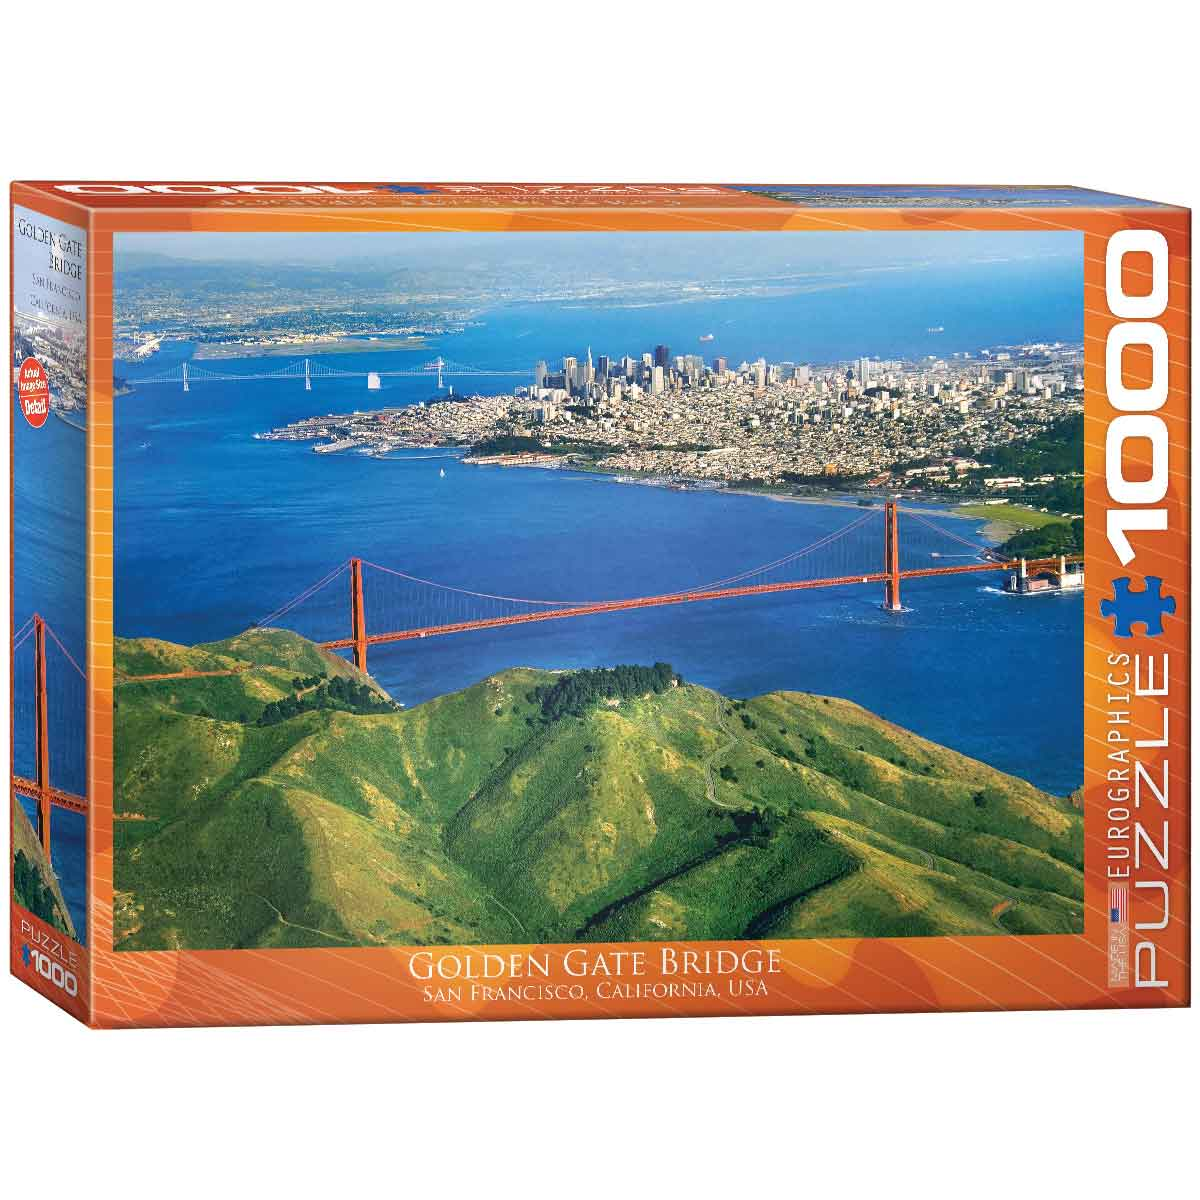 Puzzle Eurographics Golden Gate, California de 1000 Piezas